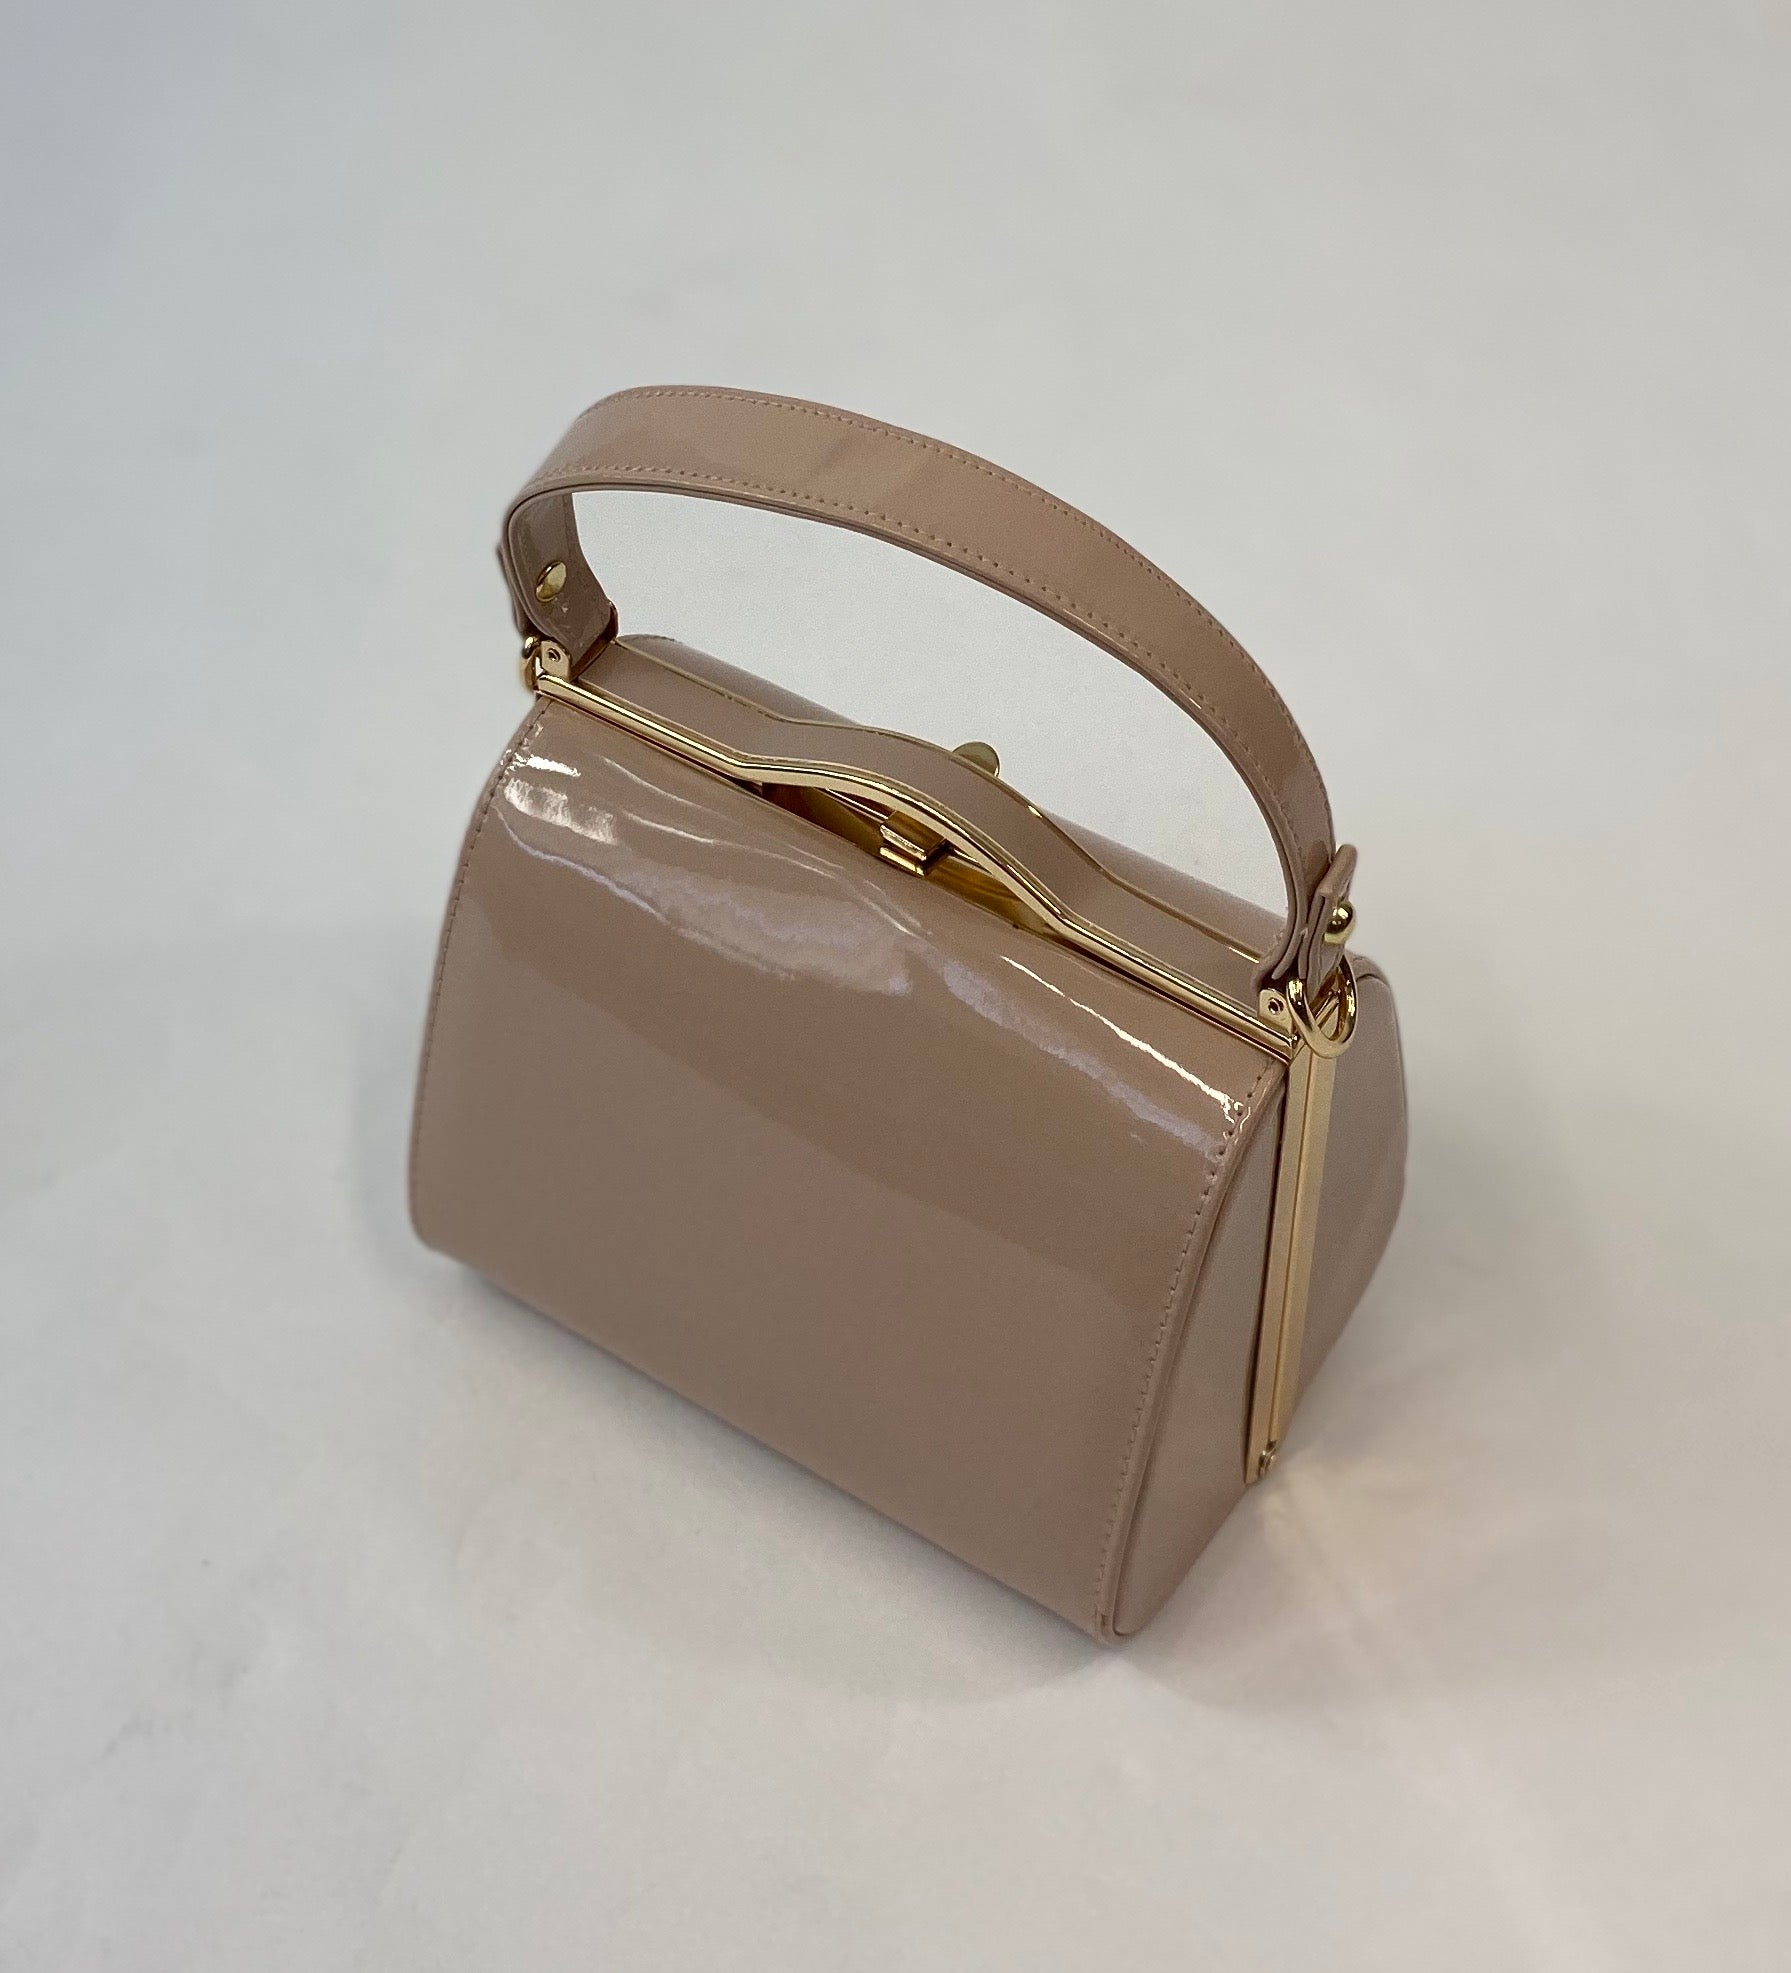 Vintage Inspired Kelly Hand Bag In classic Nude - RocknRomance True 1940s & 1950s Vintage Style